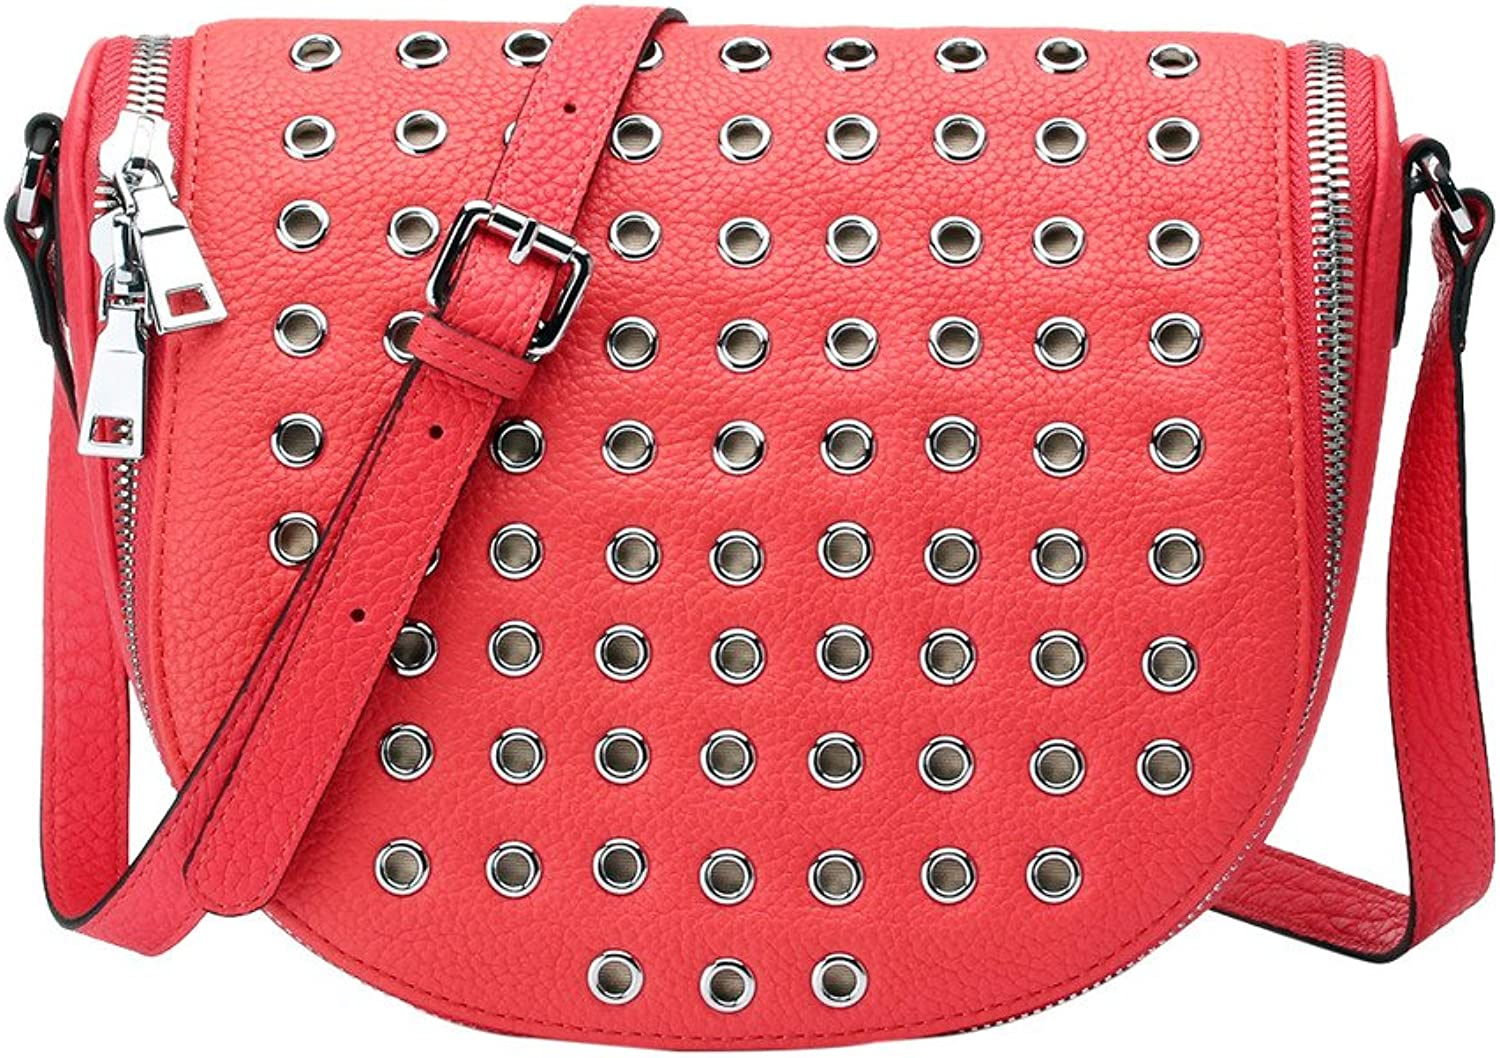 Contacts Women Medium Handbag Corn Rivets Shoulder Bag Genuine Leather orange Red